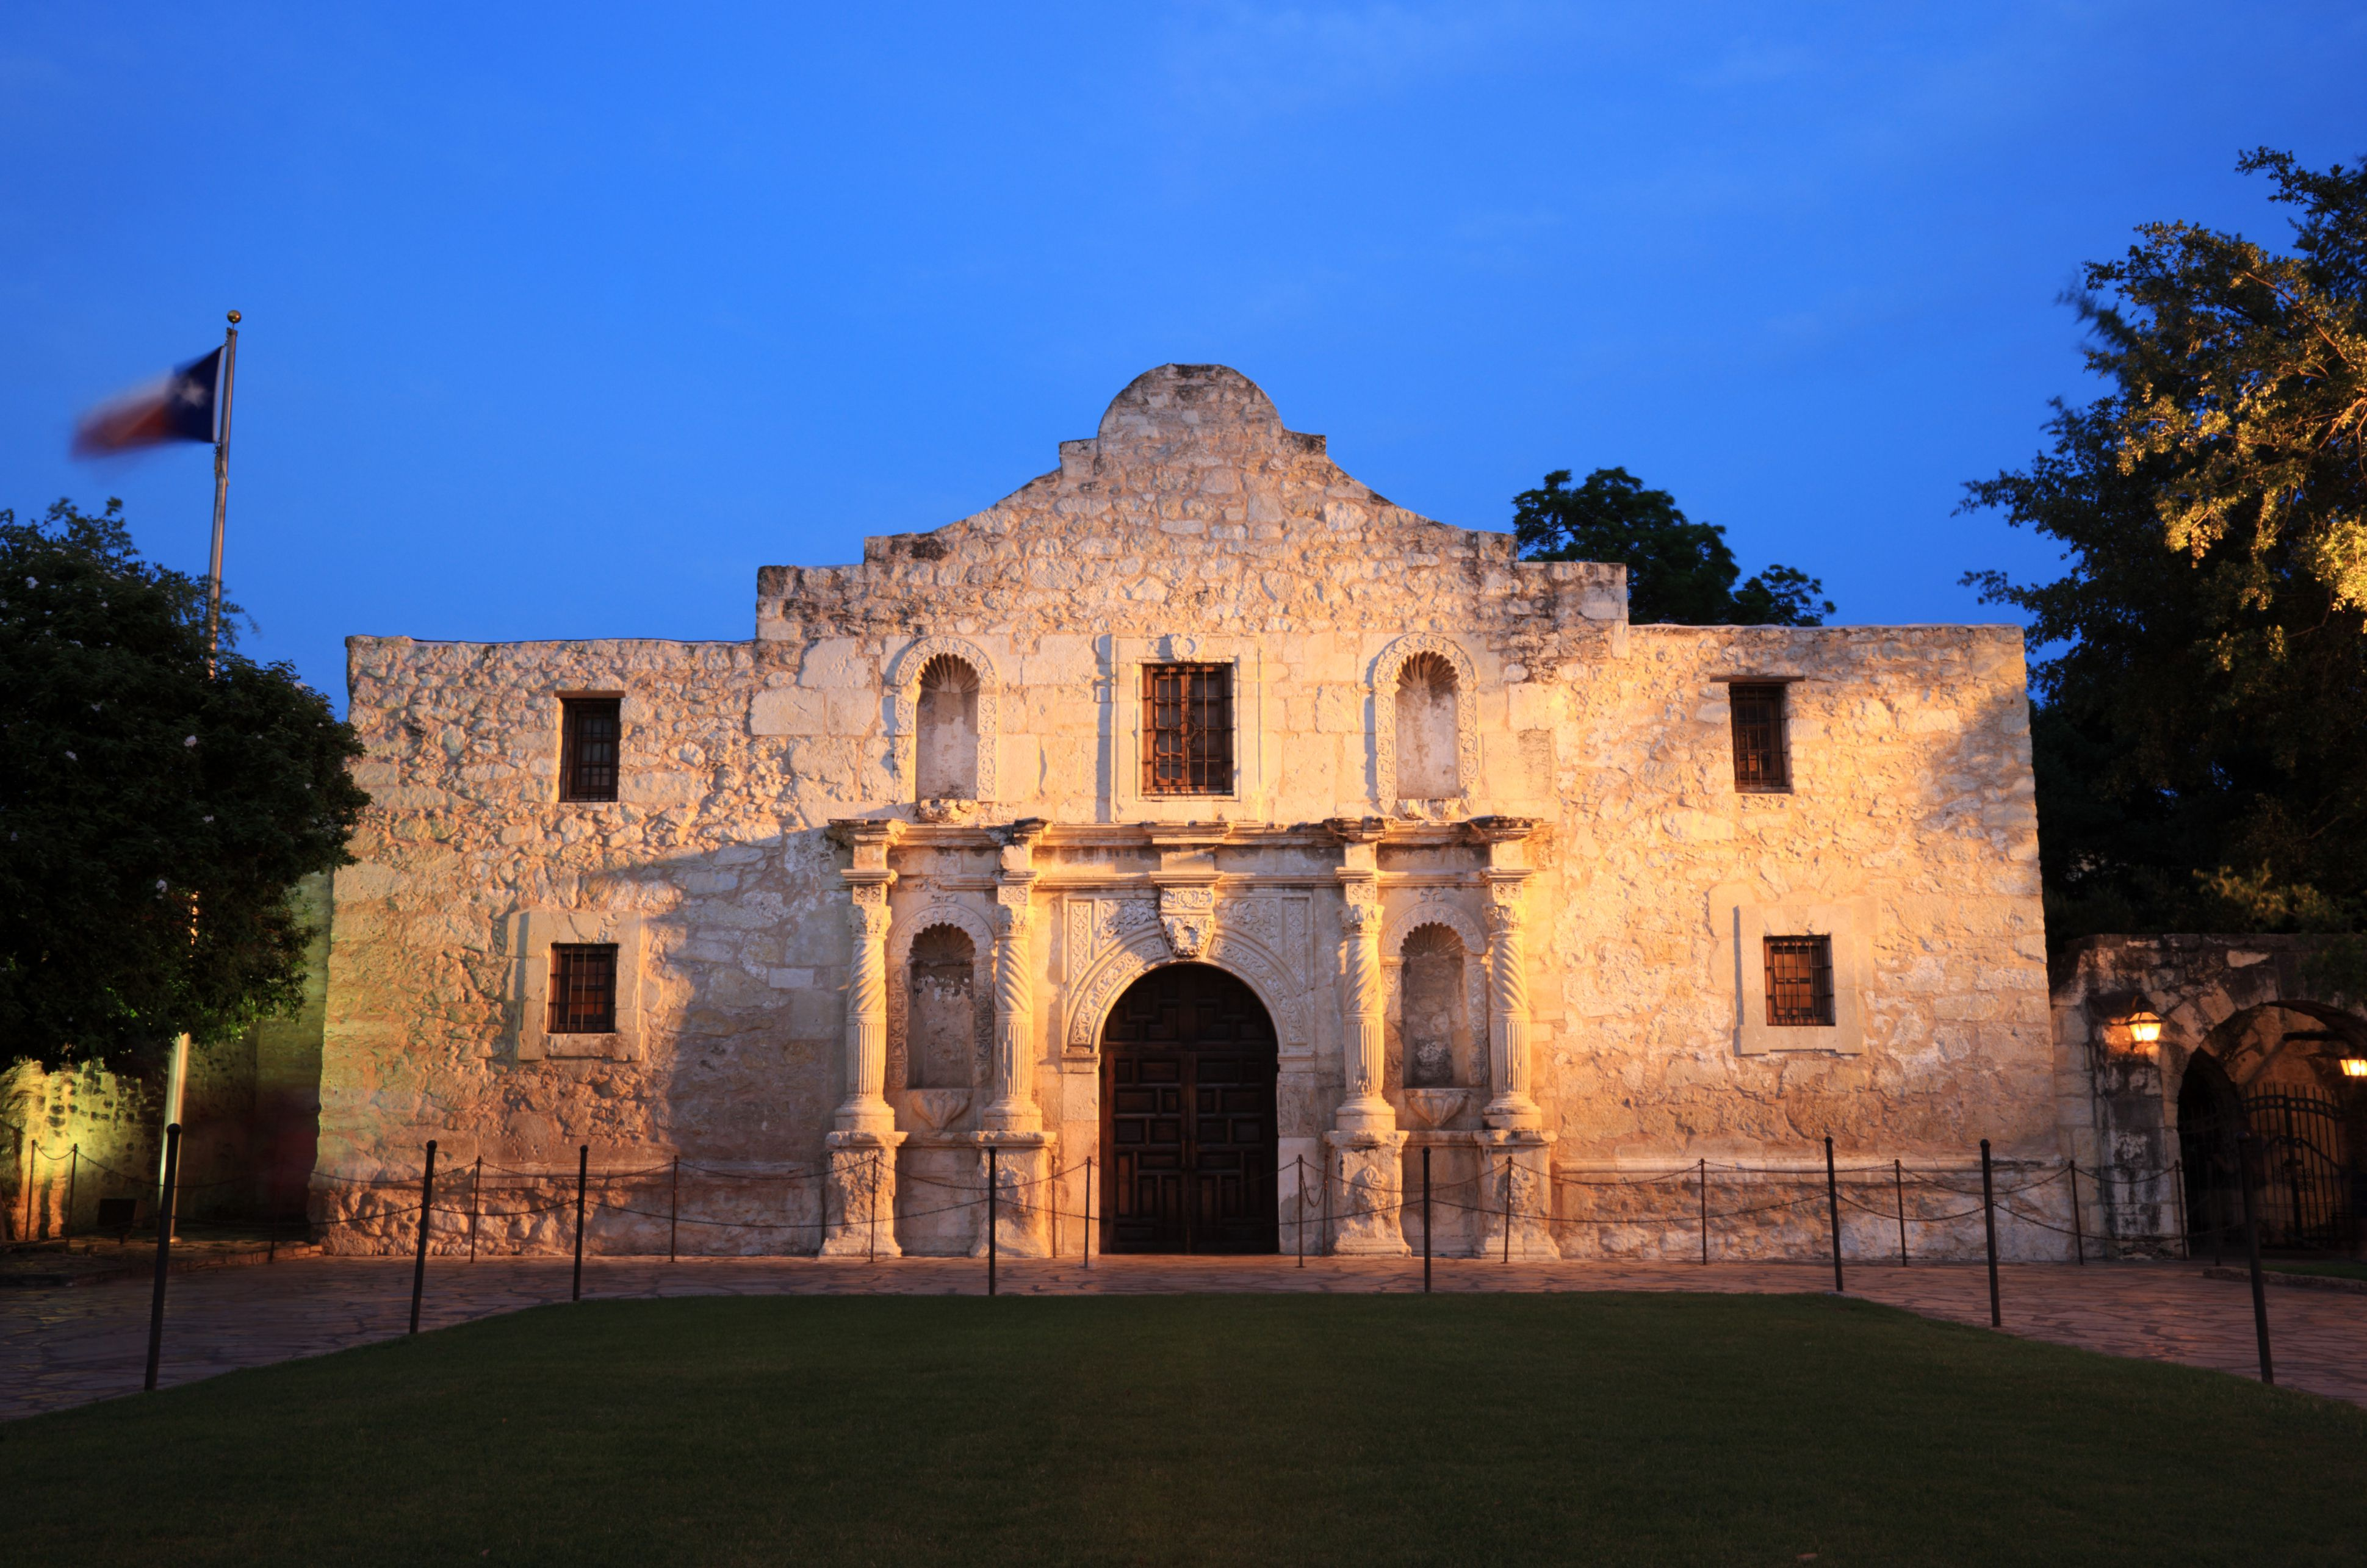 Most Popular Attractions In Texas